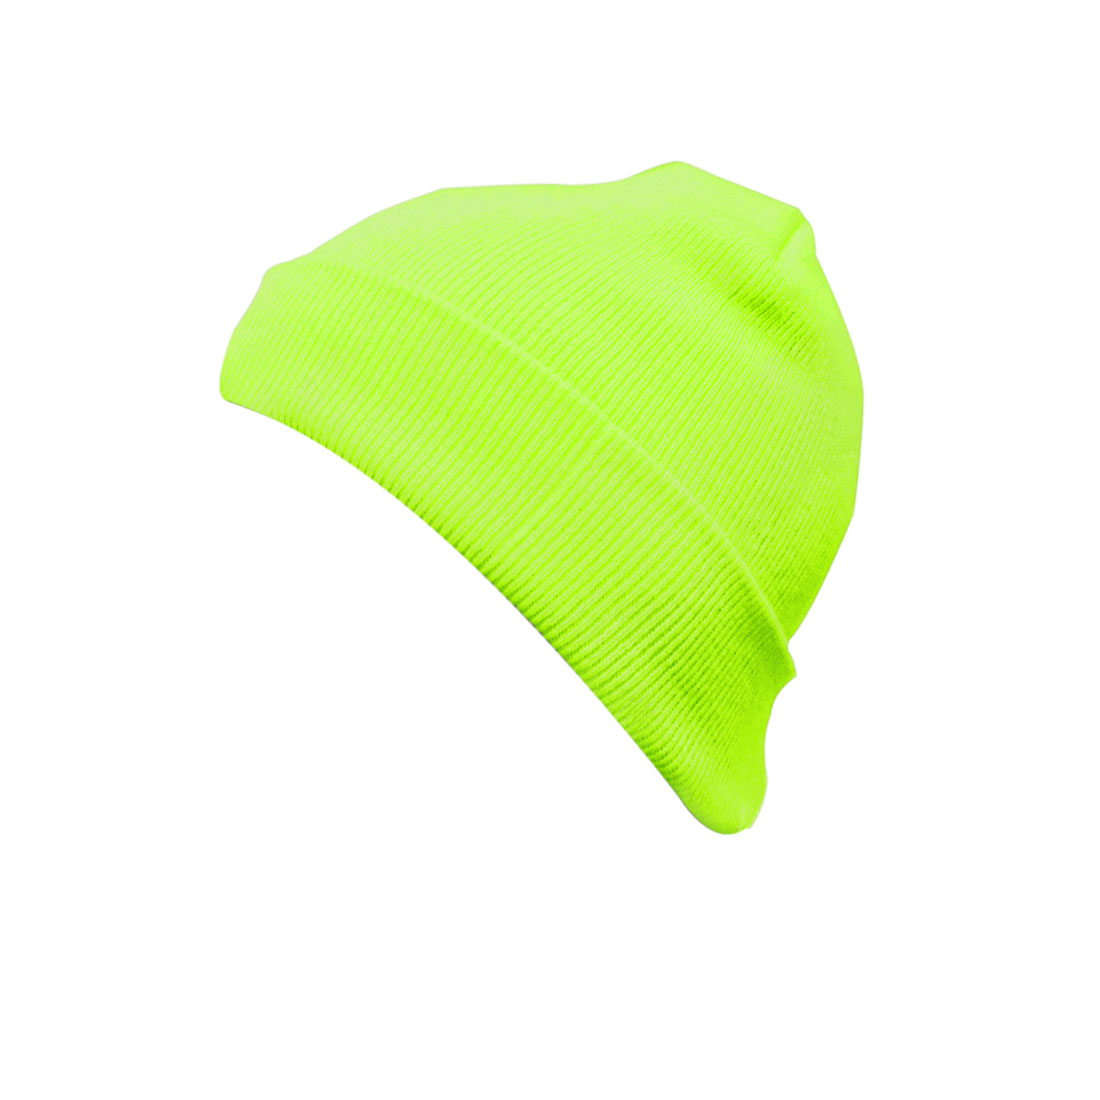 Unisex Fluorescein Color Leisure Knitting Simple Style Beanie Cap